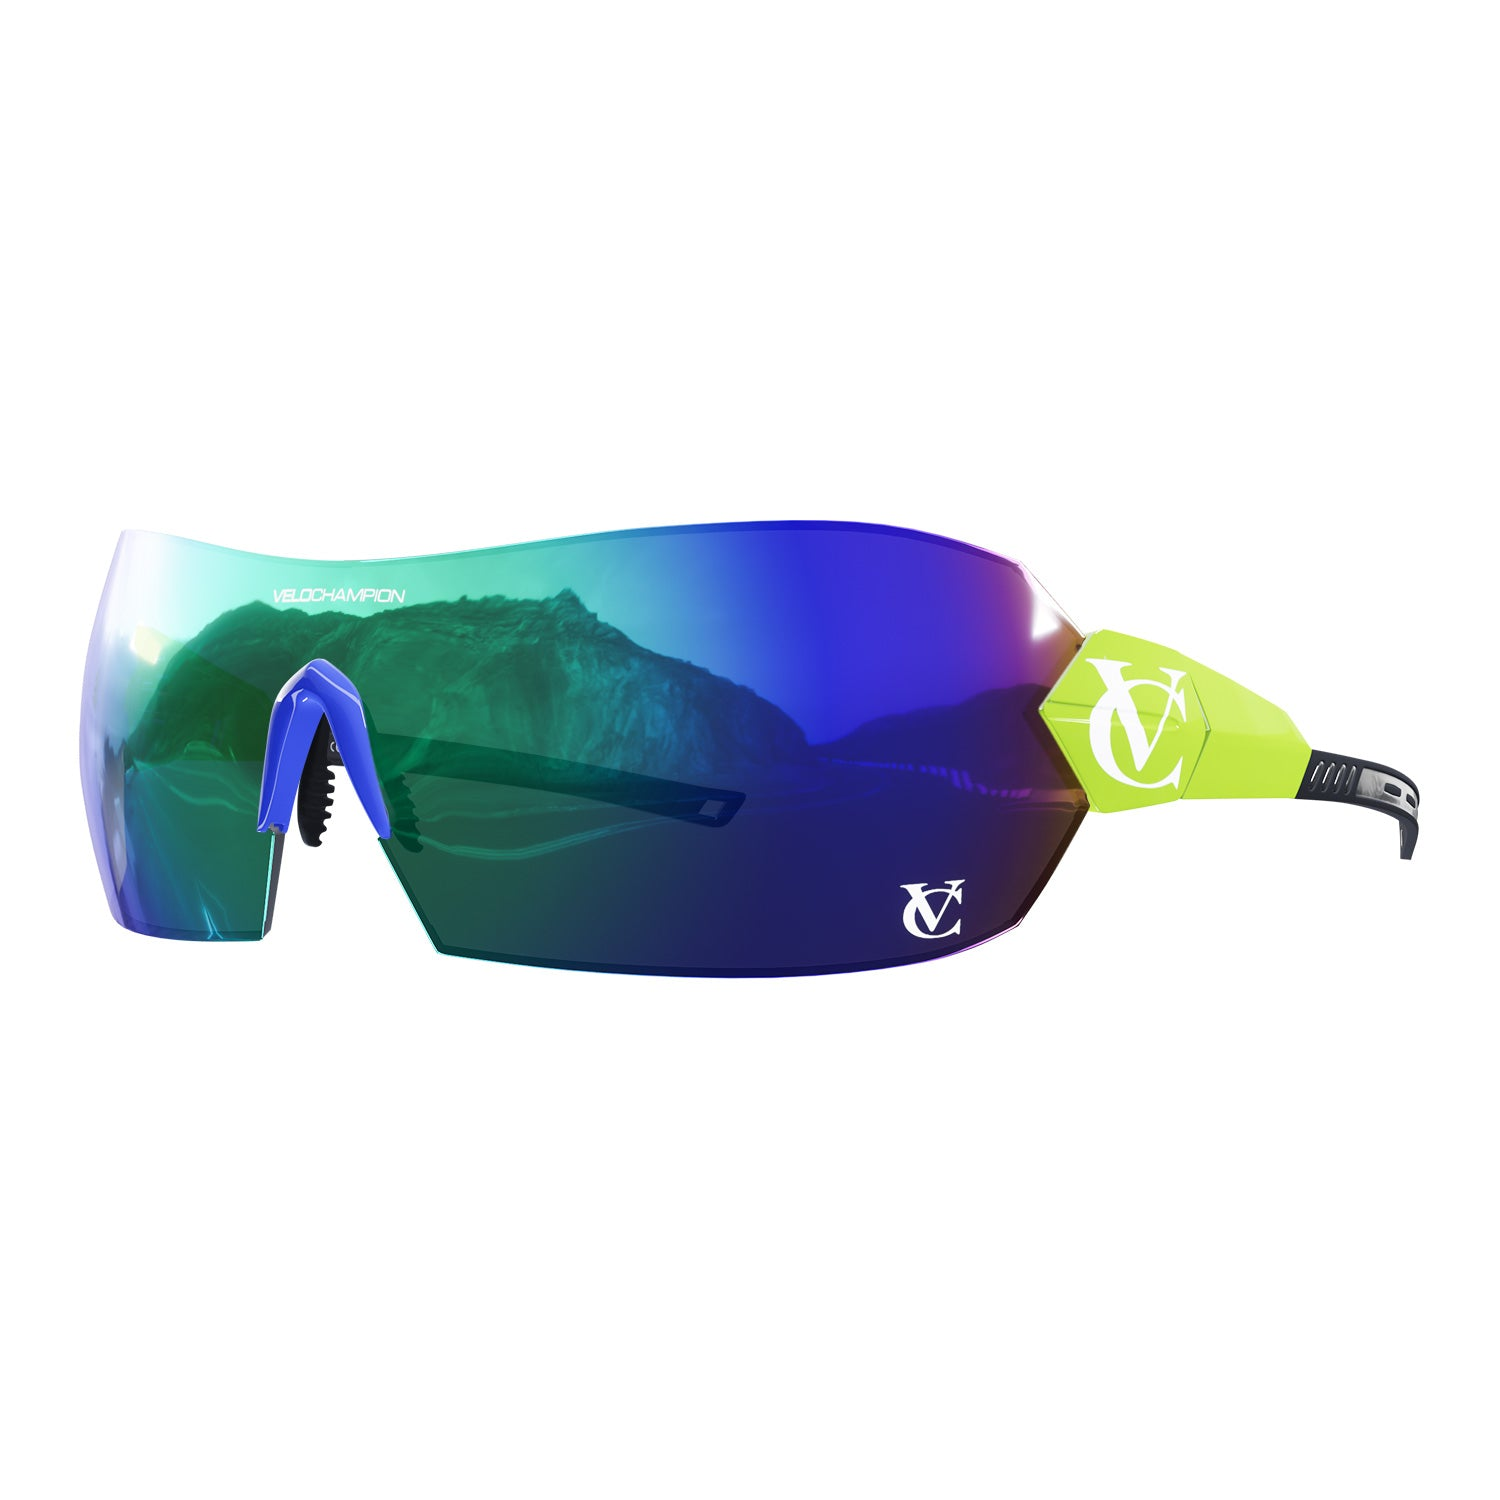 Hypersonic cycling glasses with lime green frame, green lens and blue nose piece | VeloChampion